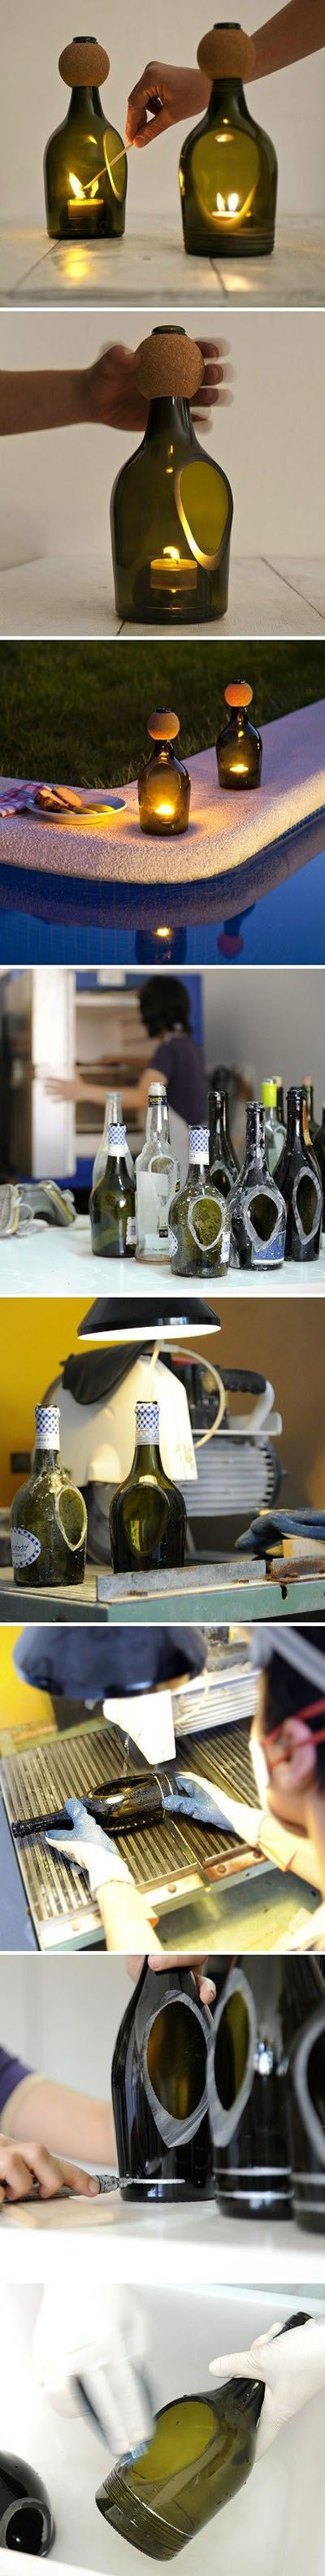 DIY Wine Bottles Craft